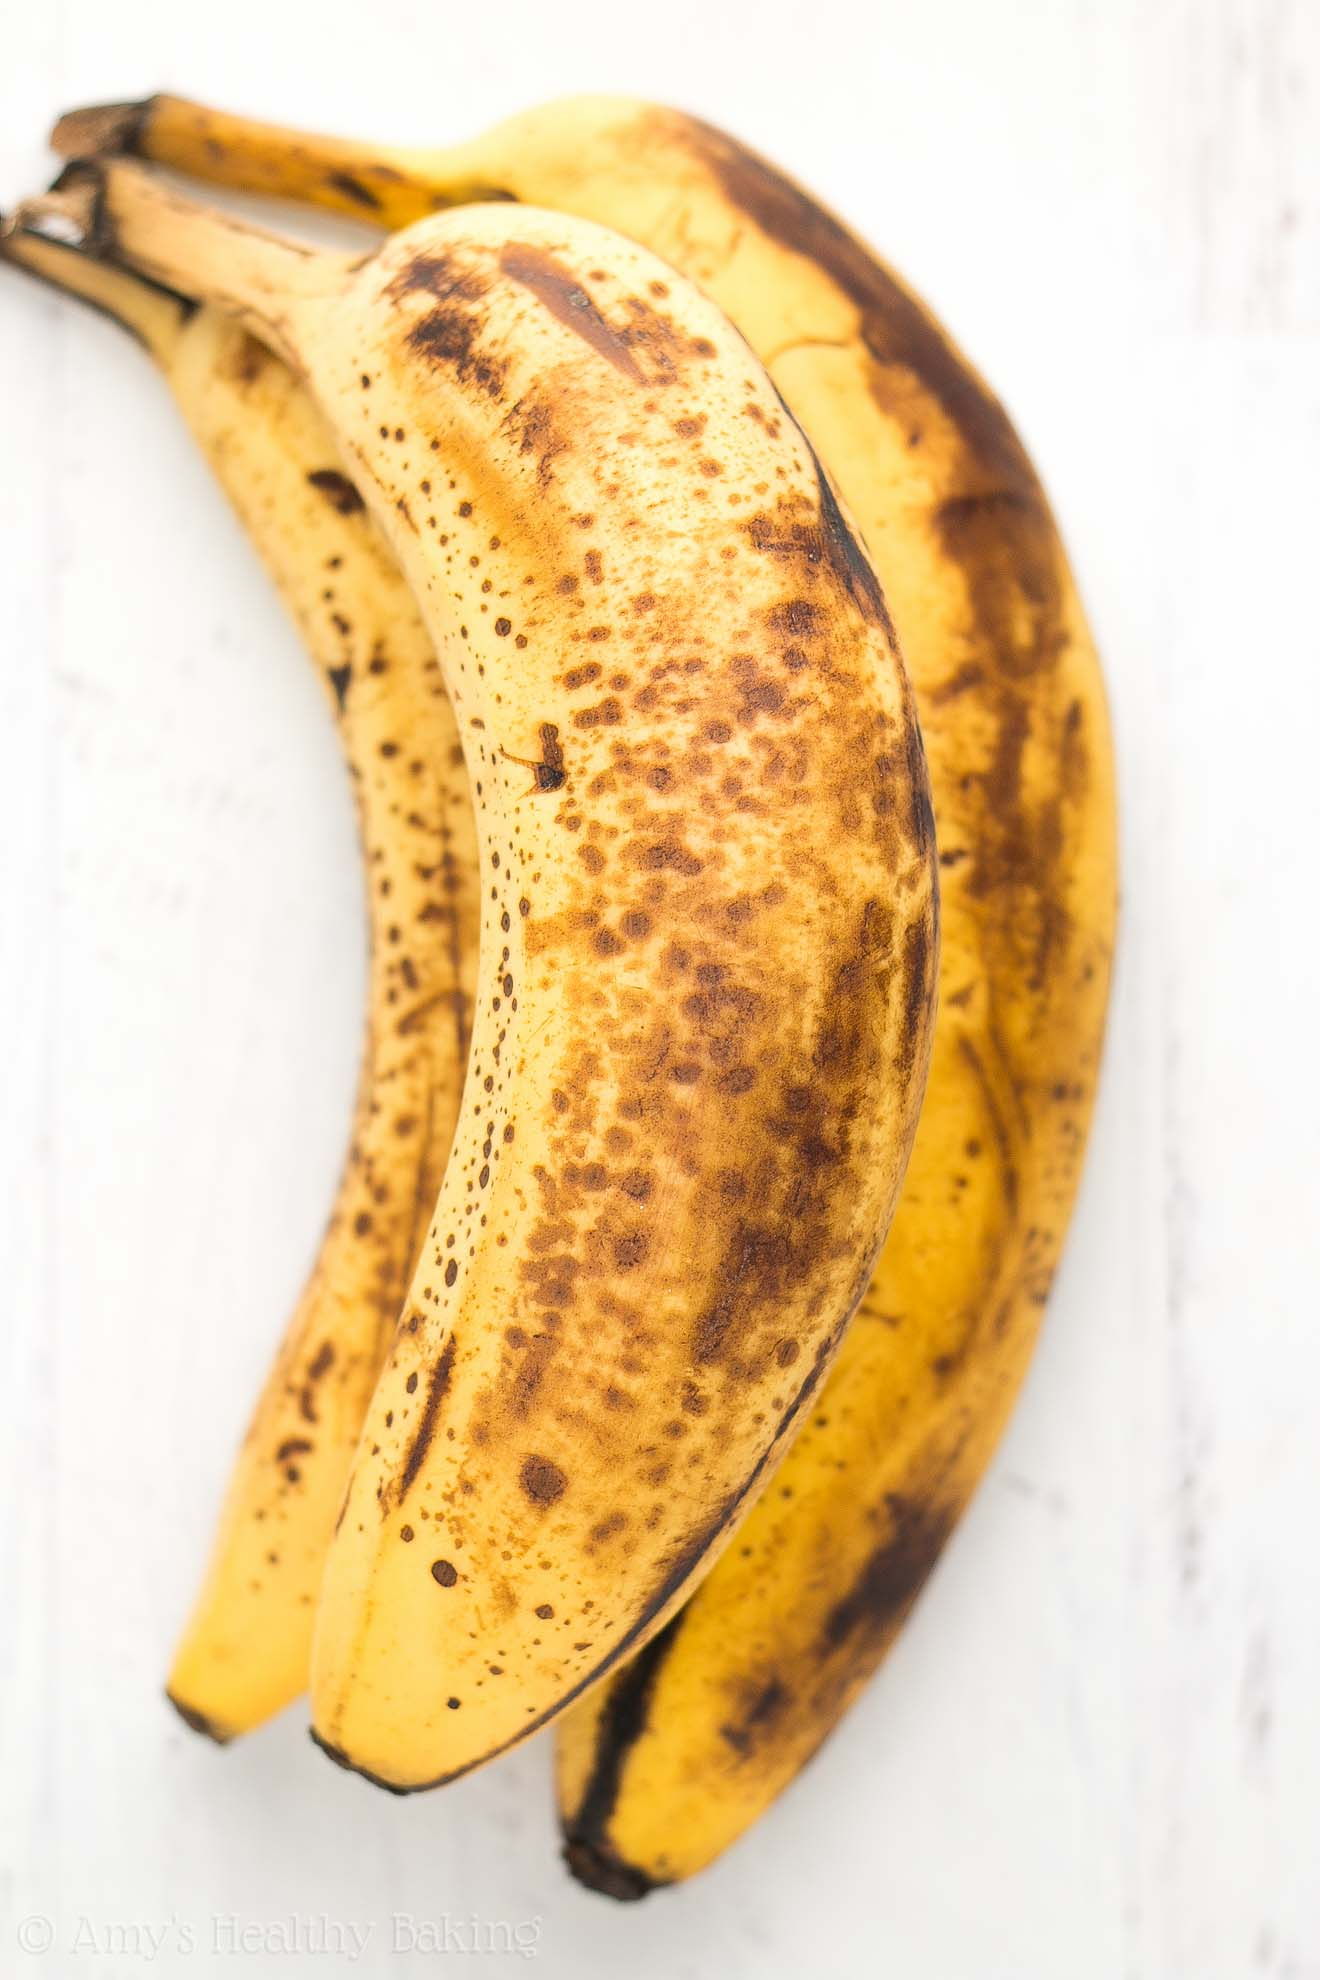 Three very ripe bananas that are perfect for baking